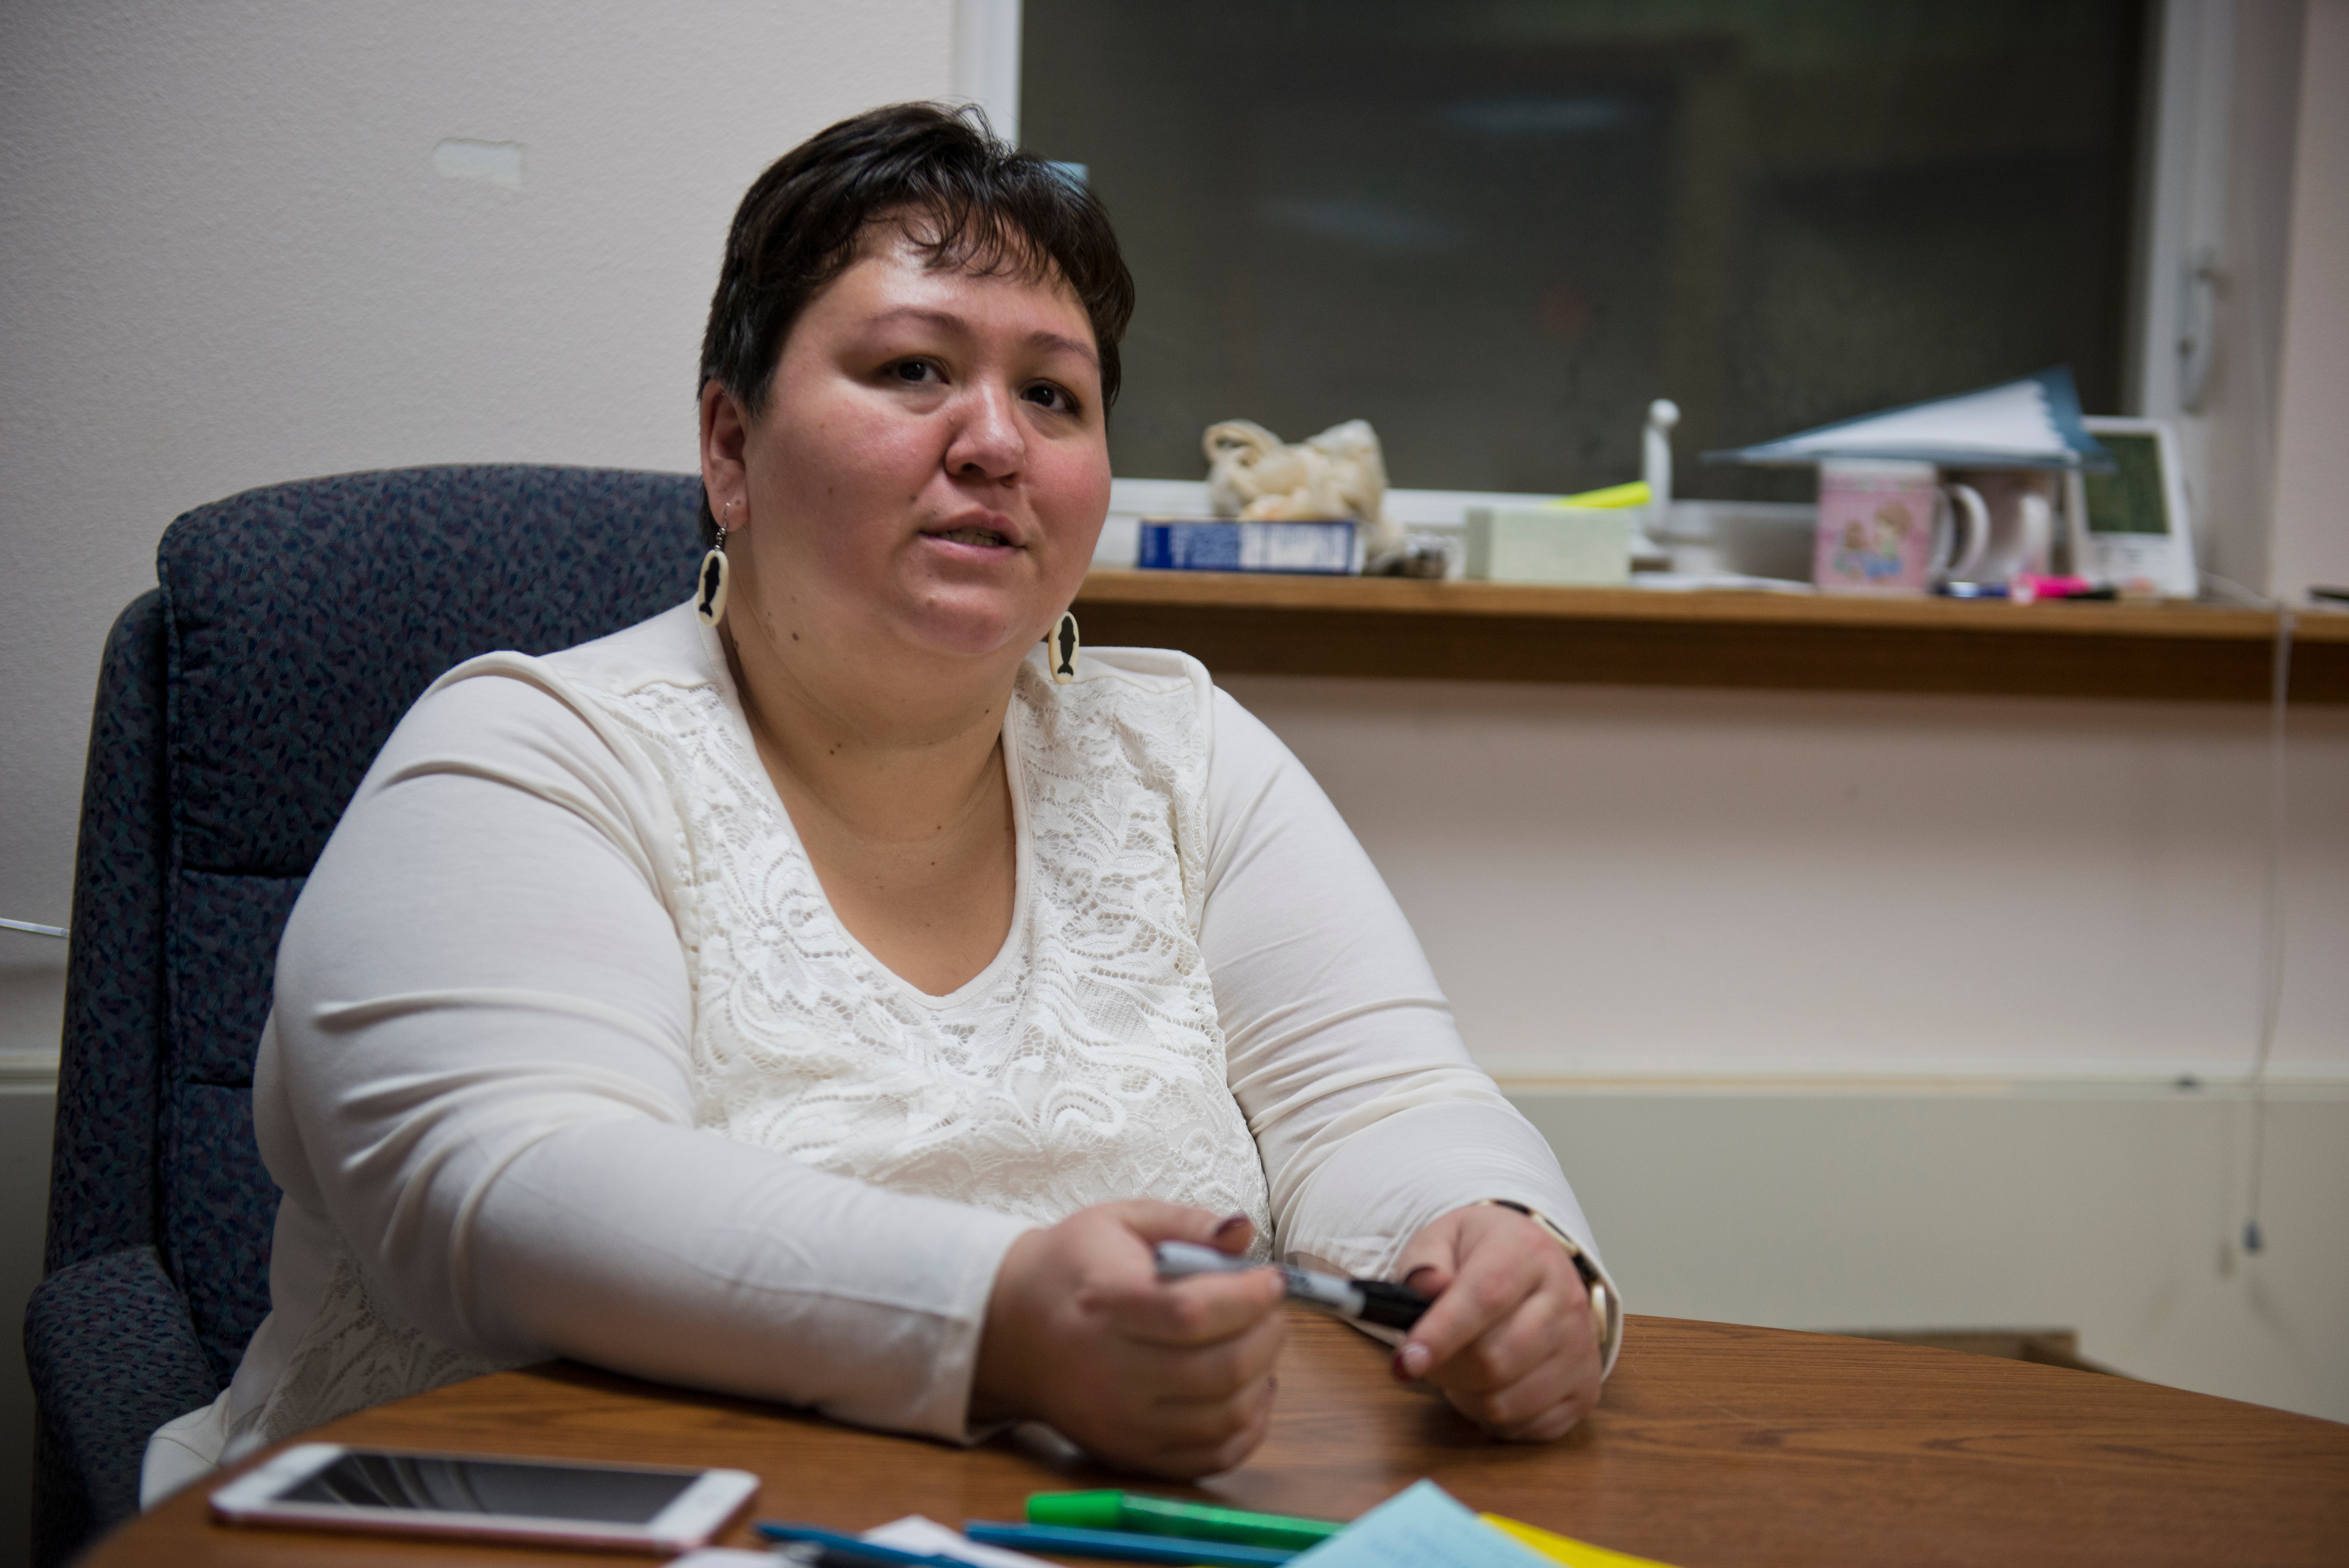 """Fannie Suvlu, mayor of Utqiaġvik, said the recent name change of the city has been divisive among residents. """"I have no preference, whether I'm in Barrow or whether I'm in Utqiaġvik. I'm in the same place,"""" she said. Voters approved changing the name of the city of Barrow to Utqiagvik in October, a change which went into effect on December 1. In Alaska's northernmost city, however, residents remain divided about whether they name should've changed at all, whether the process was hurried, and whether the Utqiagvik is even the proper Inupiaq place name. Photographed on Monday, December 12, 2016. (Marc Lester / Alaska Dispatch News)"""